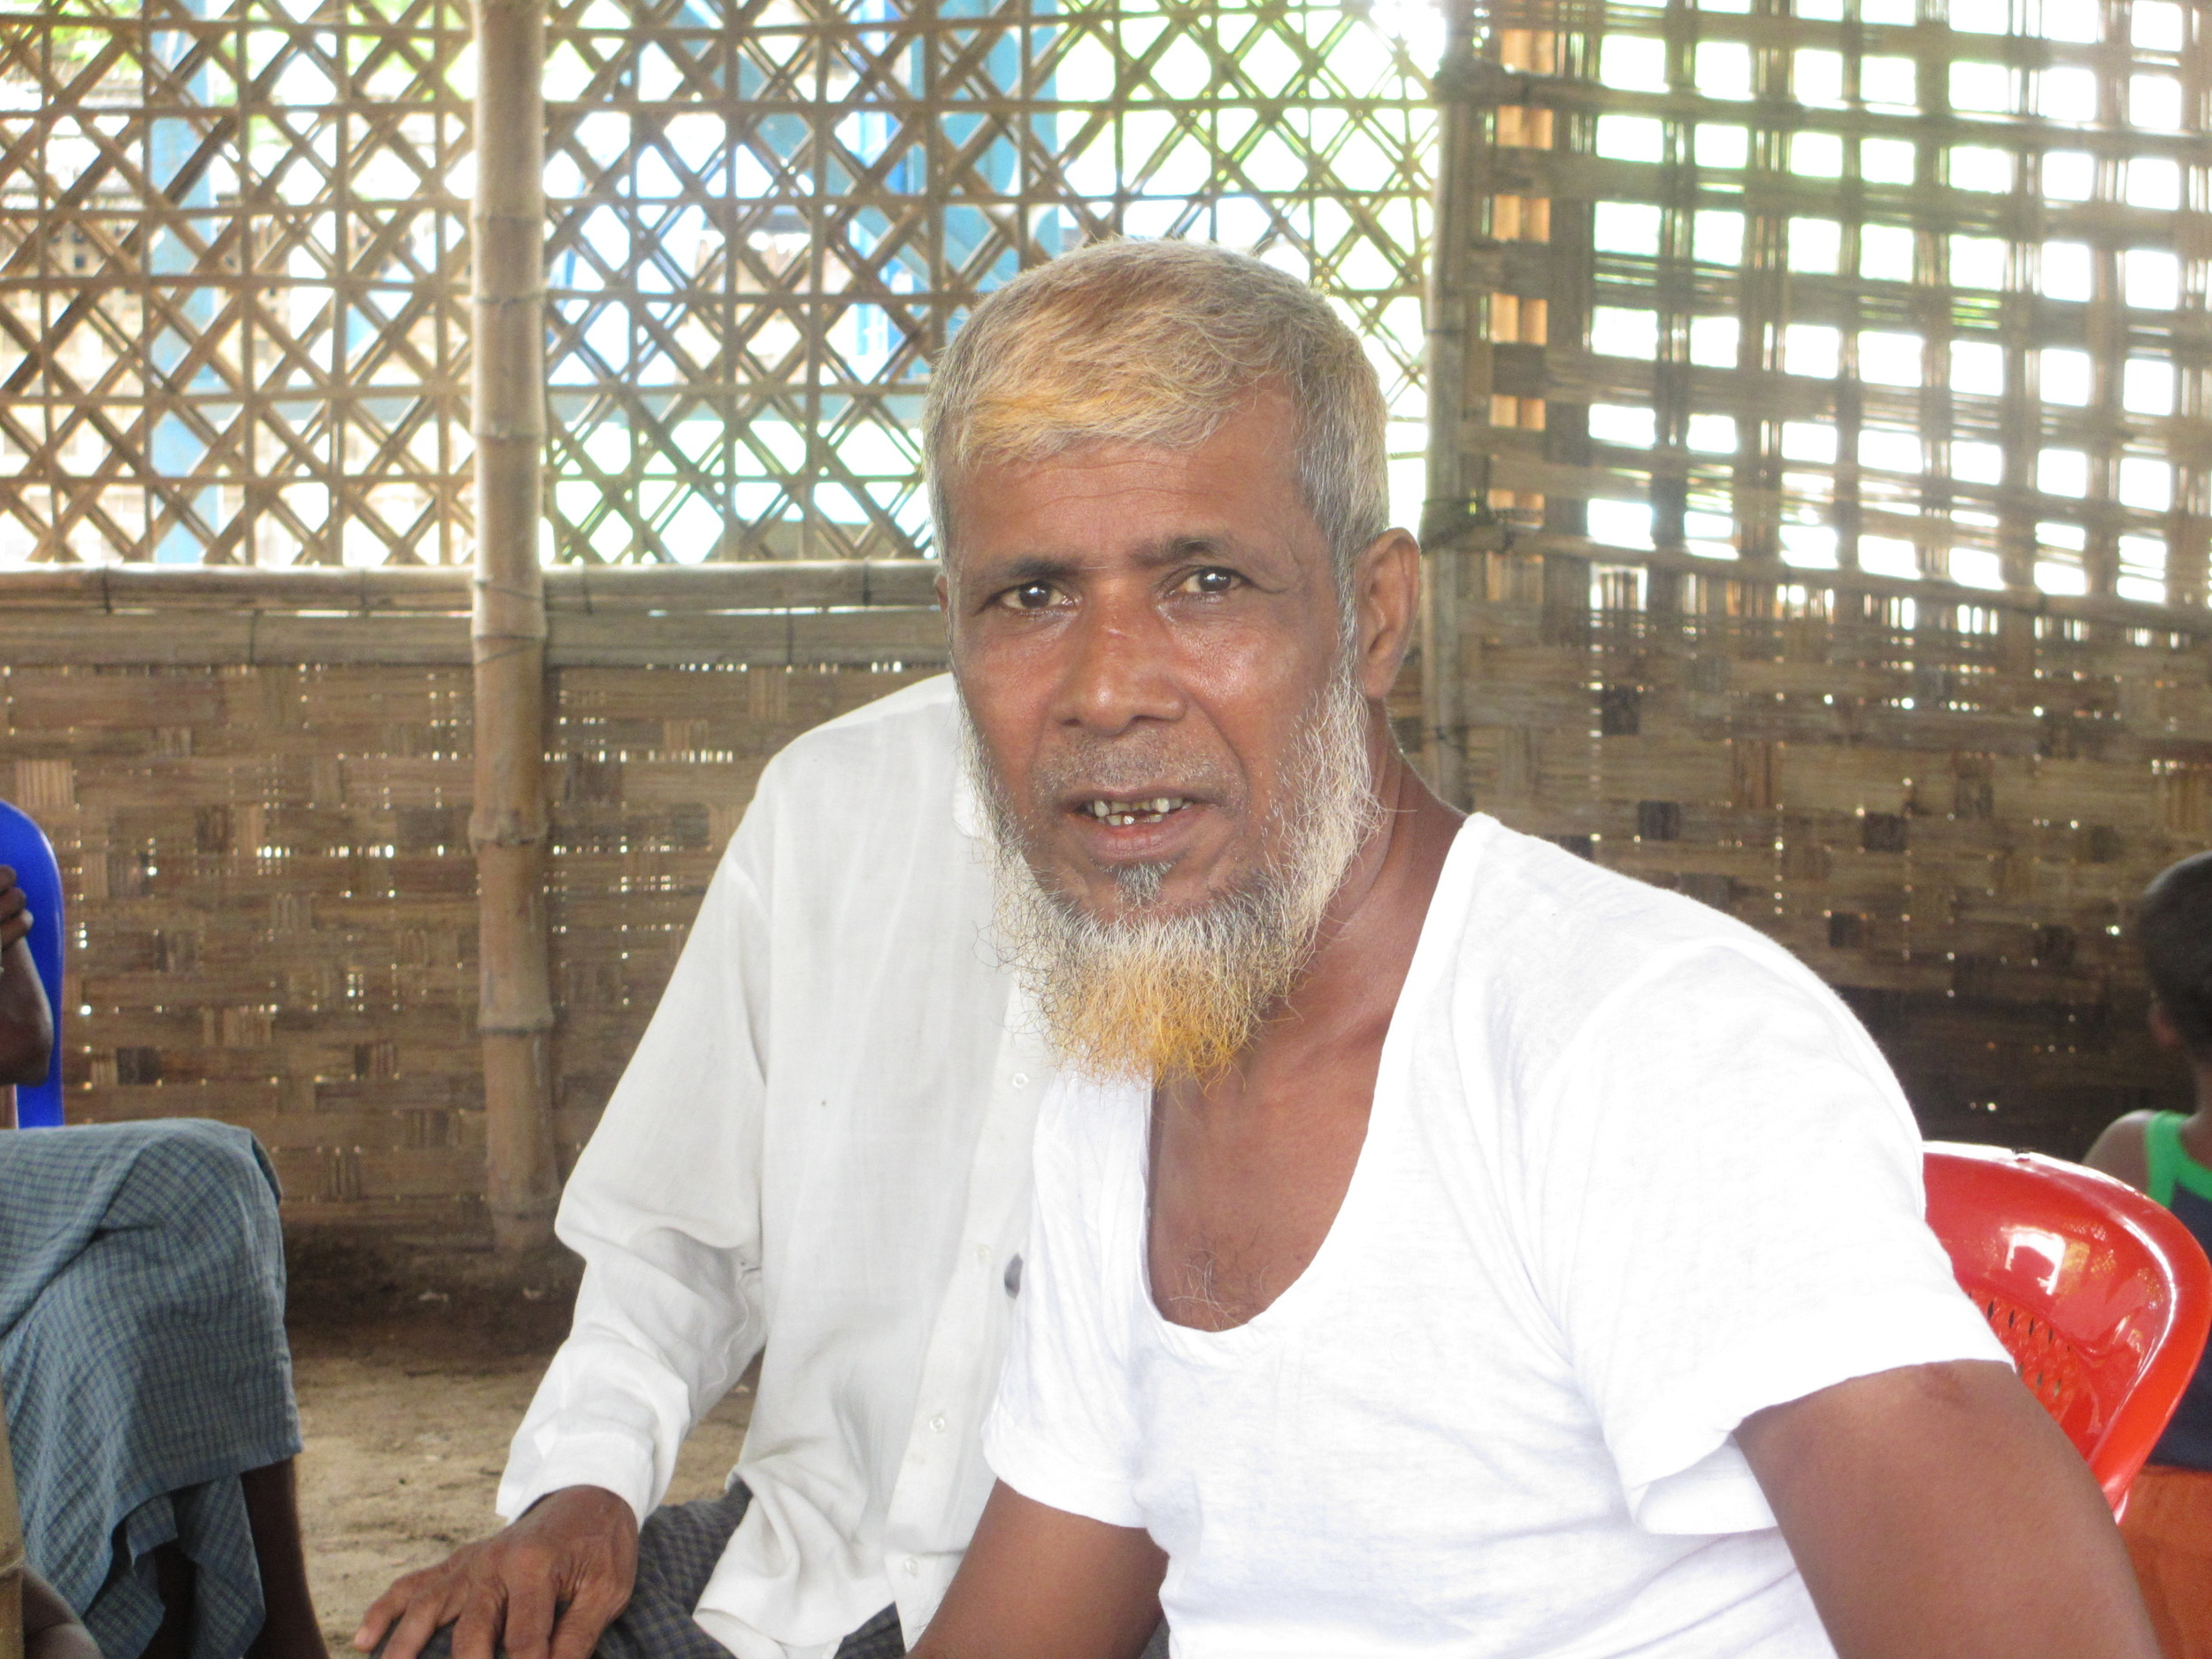 This man's son fled on a boat that was intercepted by traffickers in April 2014. He has not been heard from since.